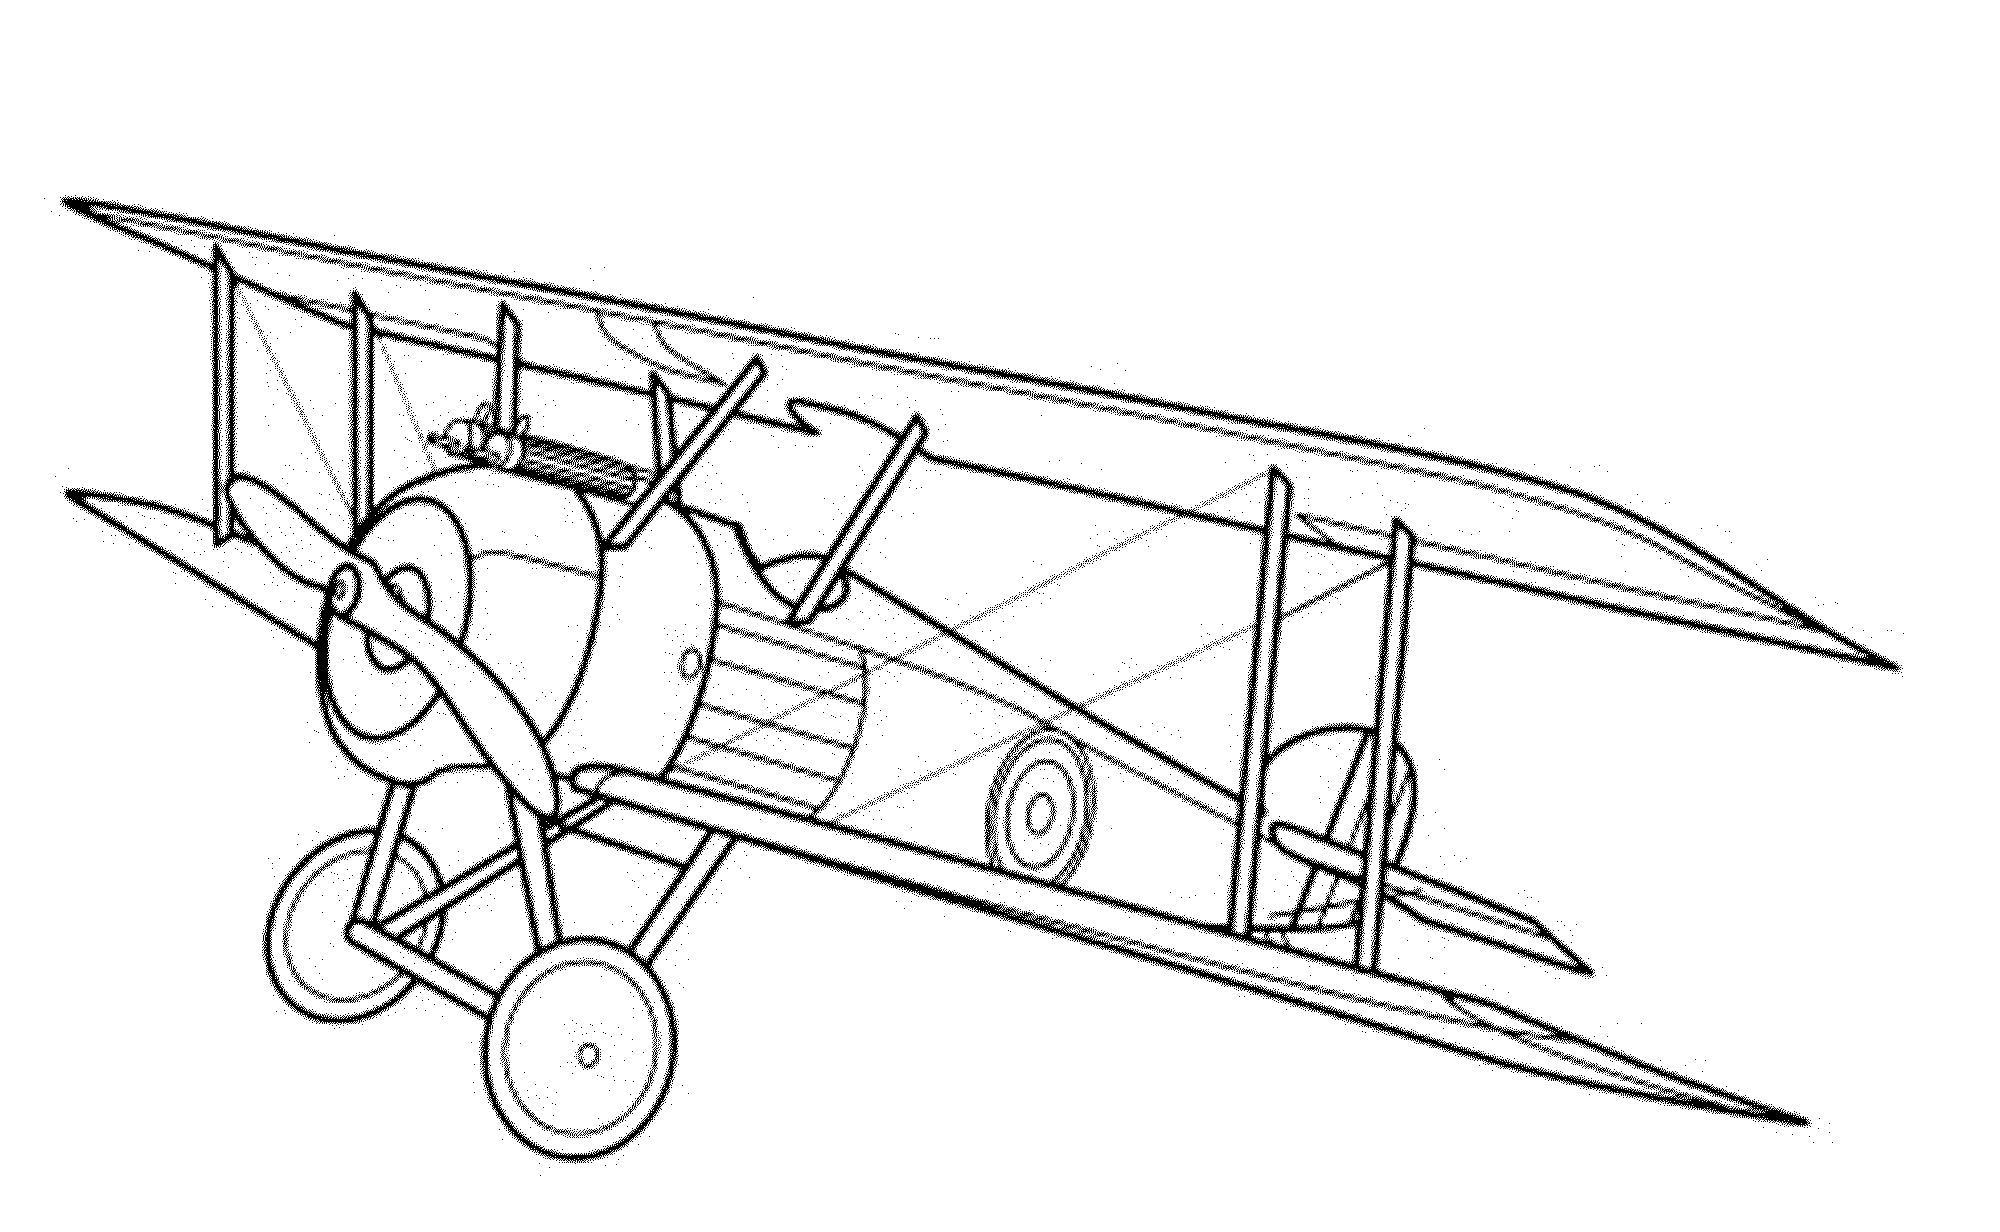 Vintage airplane coloring pages printable kids colouring for Airplane coloring page printable